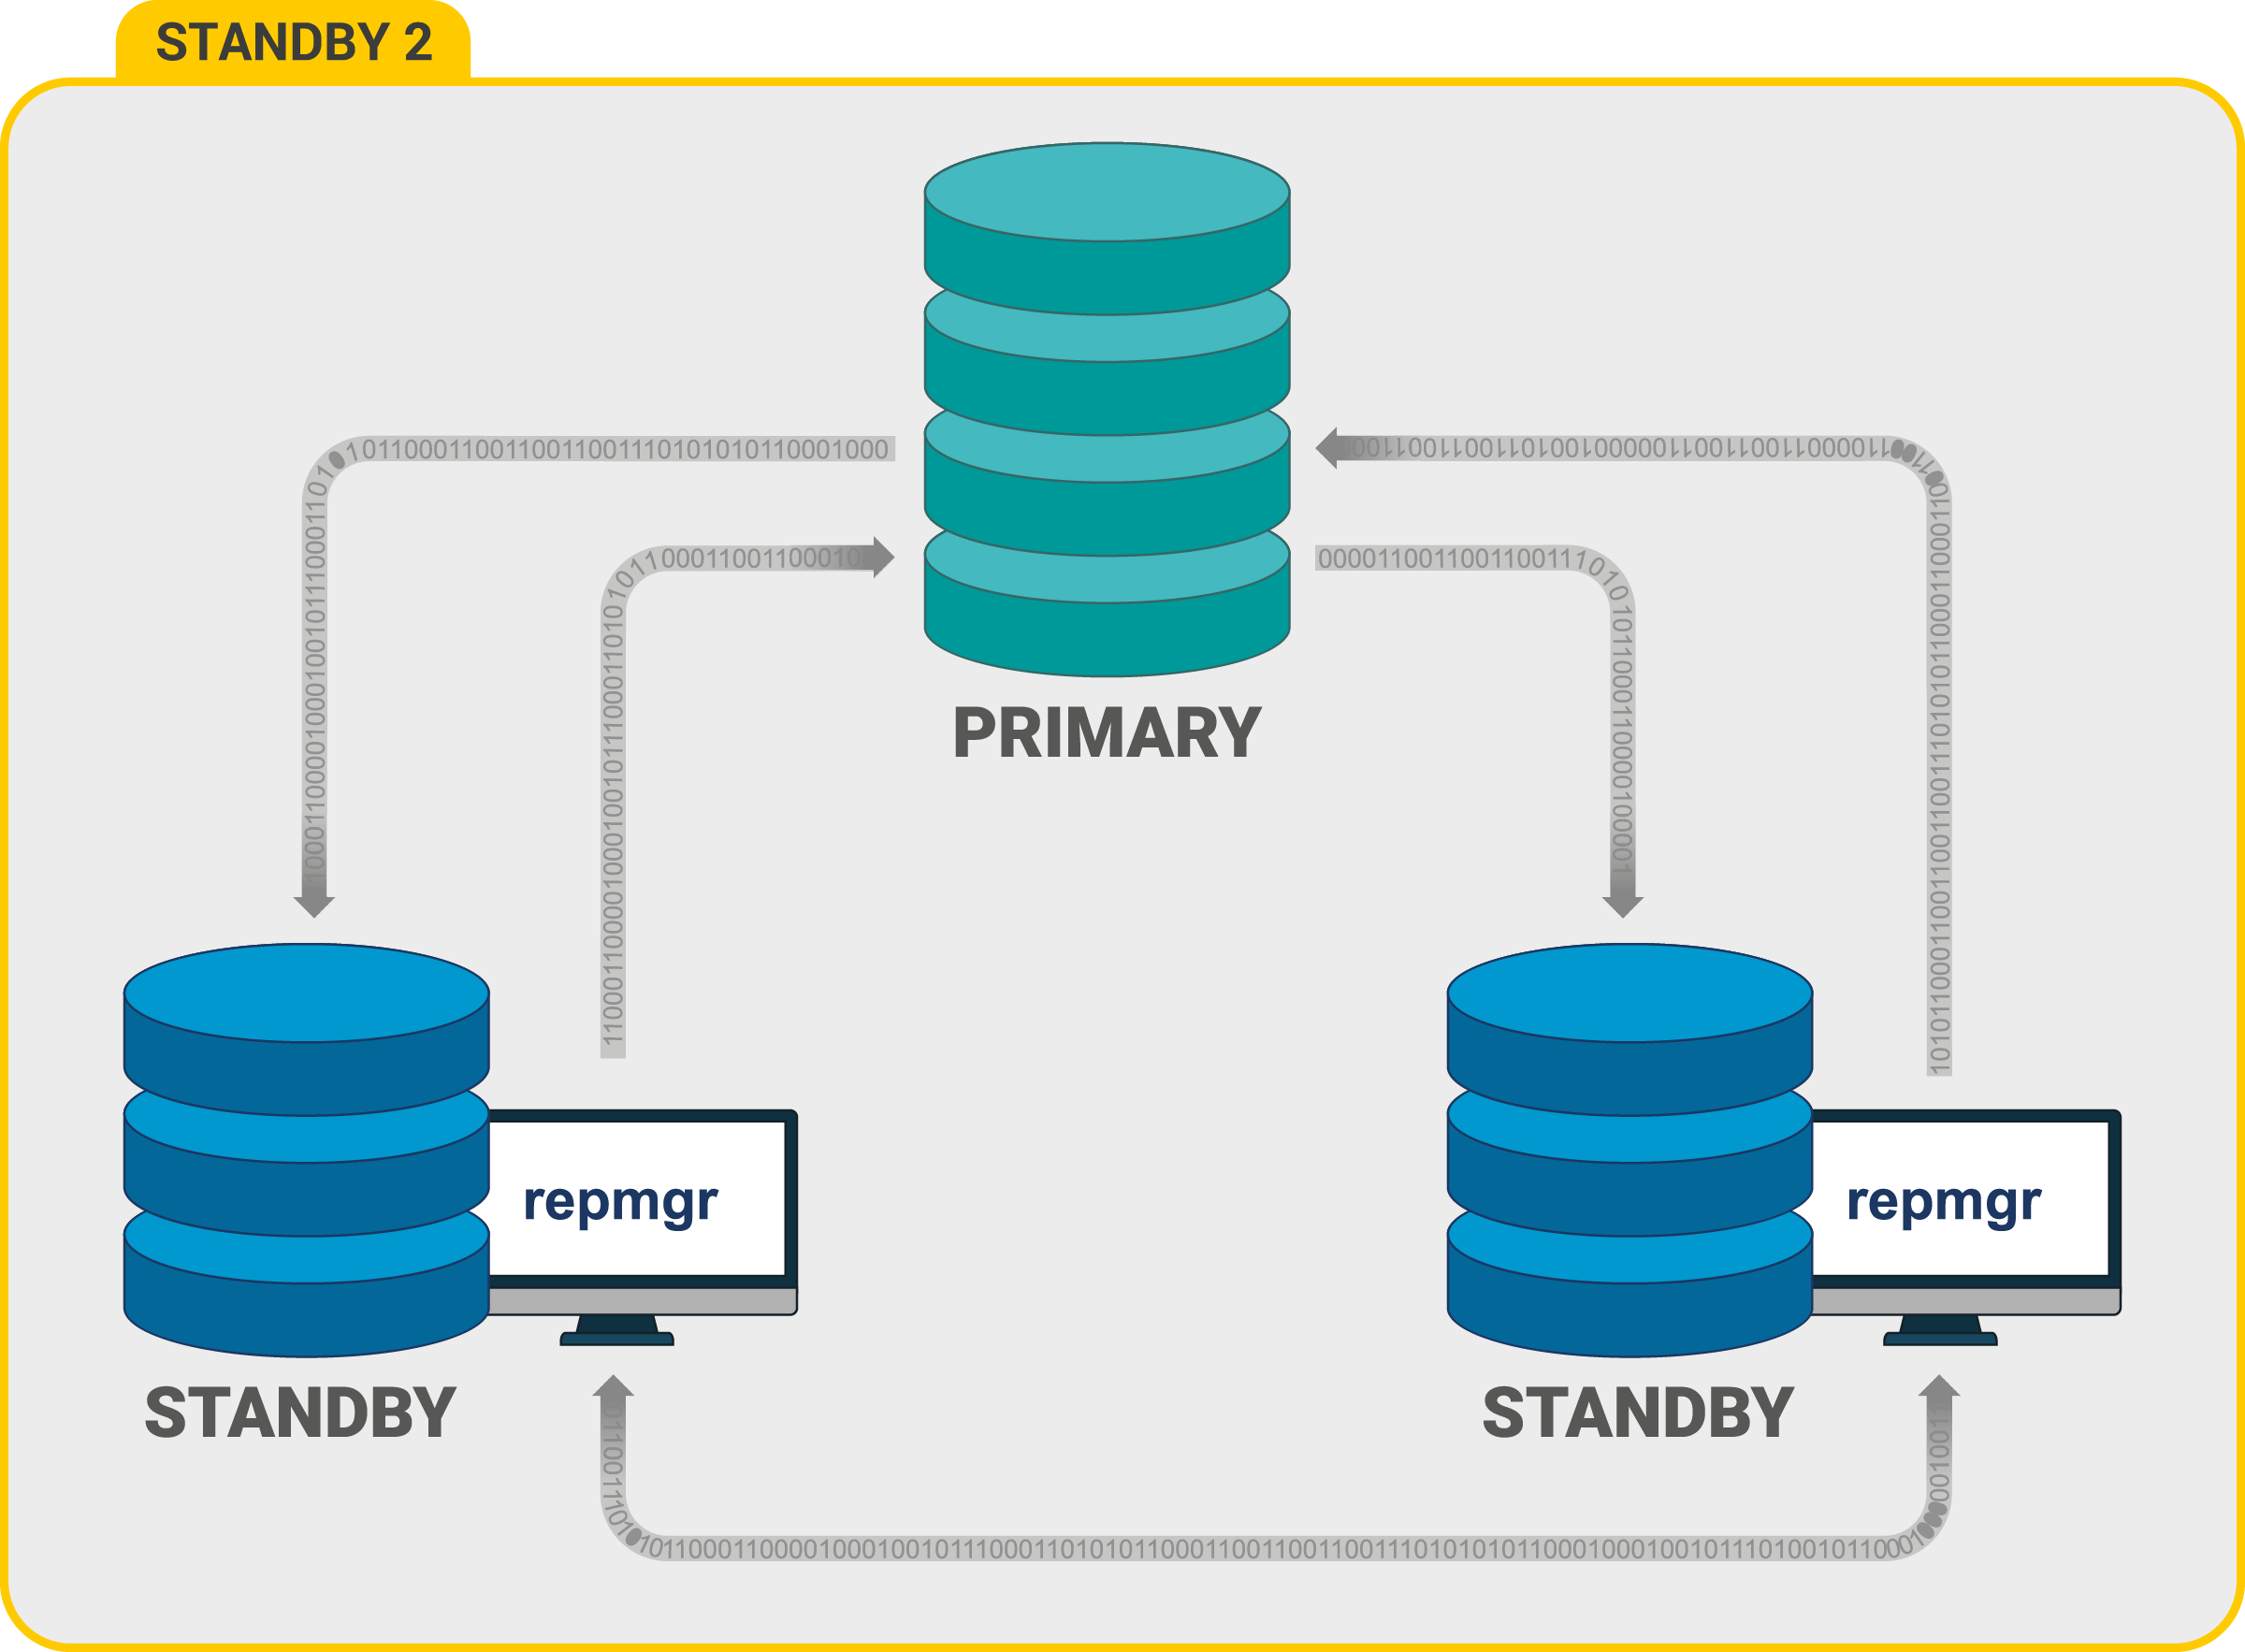 managing-high-availability-database-cluster-with-repmgr-postgresql13-repmgr5.2-one-master-two-slaves